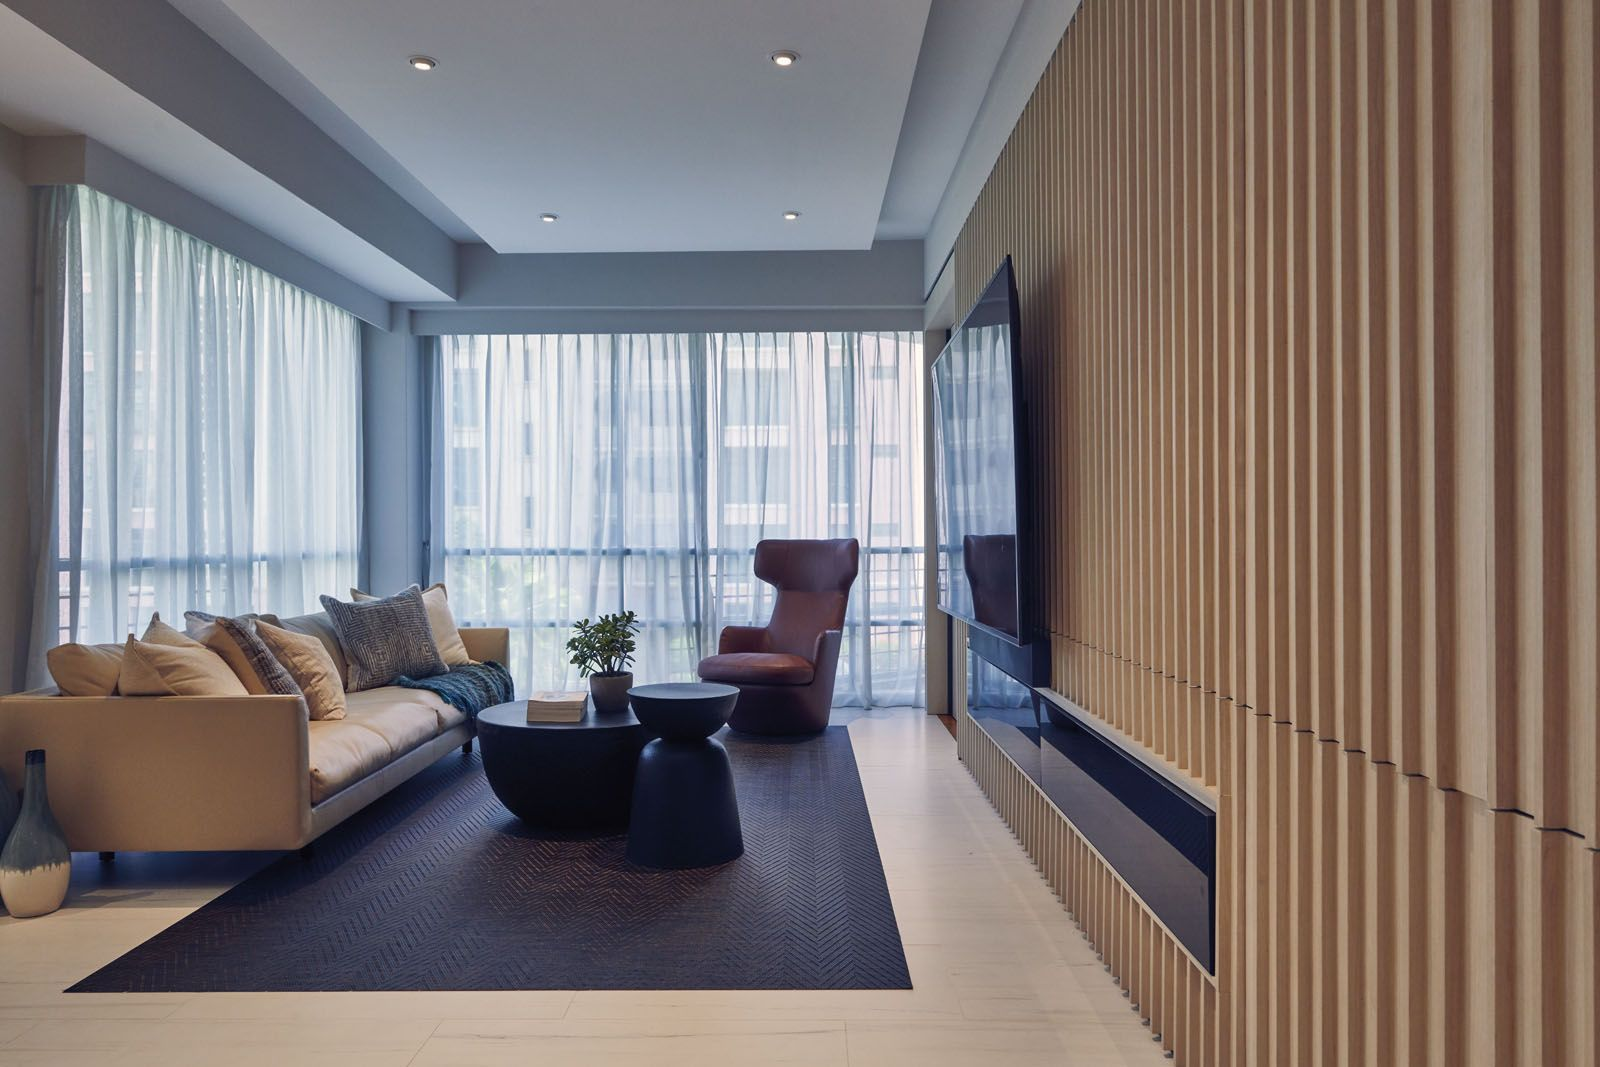 The wooden panelling functions as a sliding door while housing storage and the built-in TV console